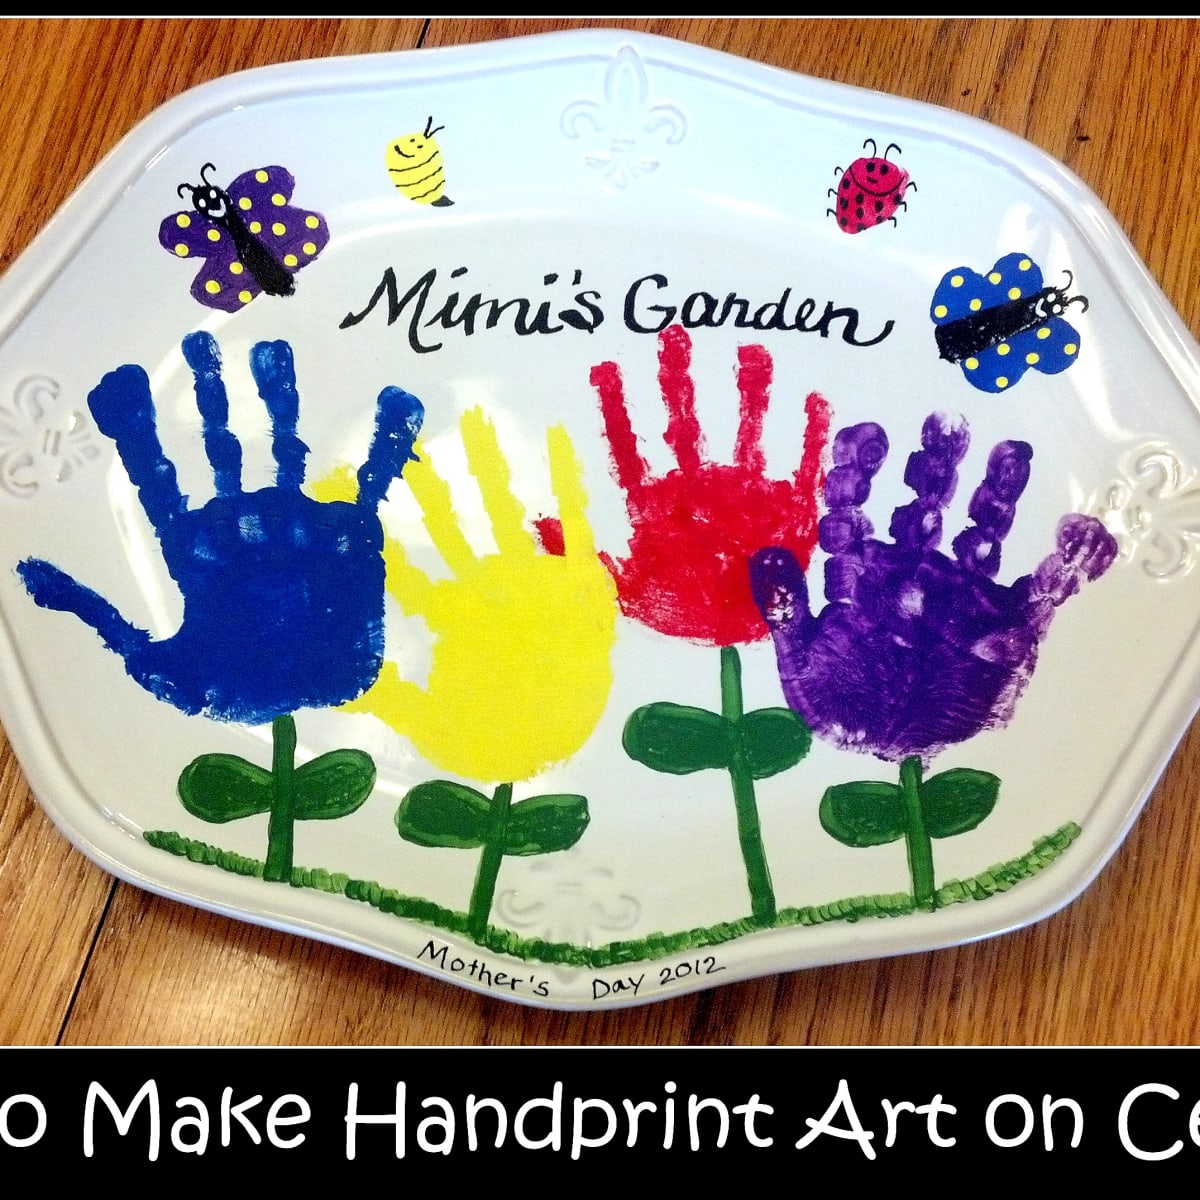 How To Make Handprint Art On Ceramics Feltmagnet Crafts